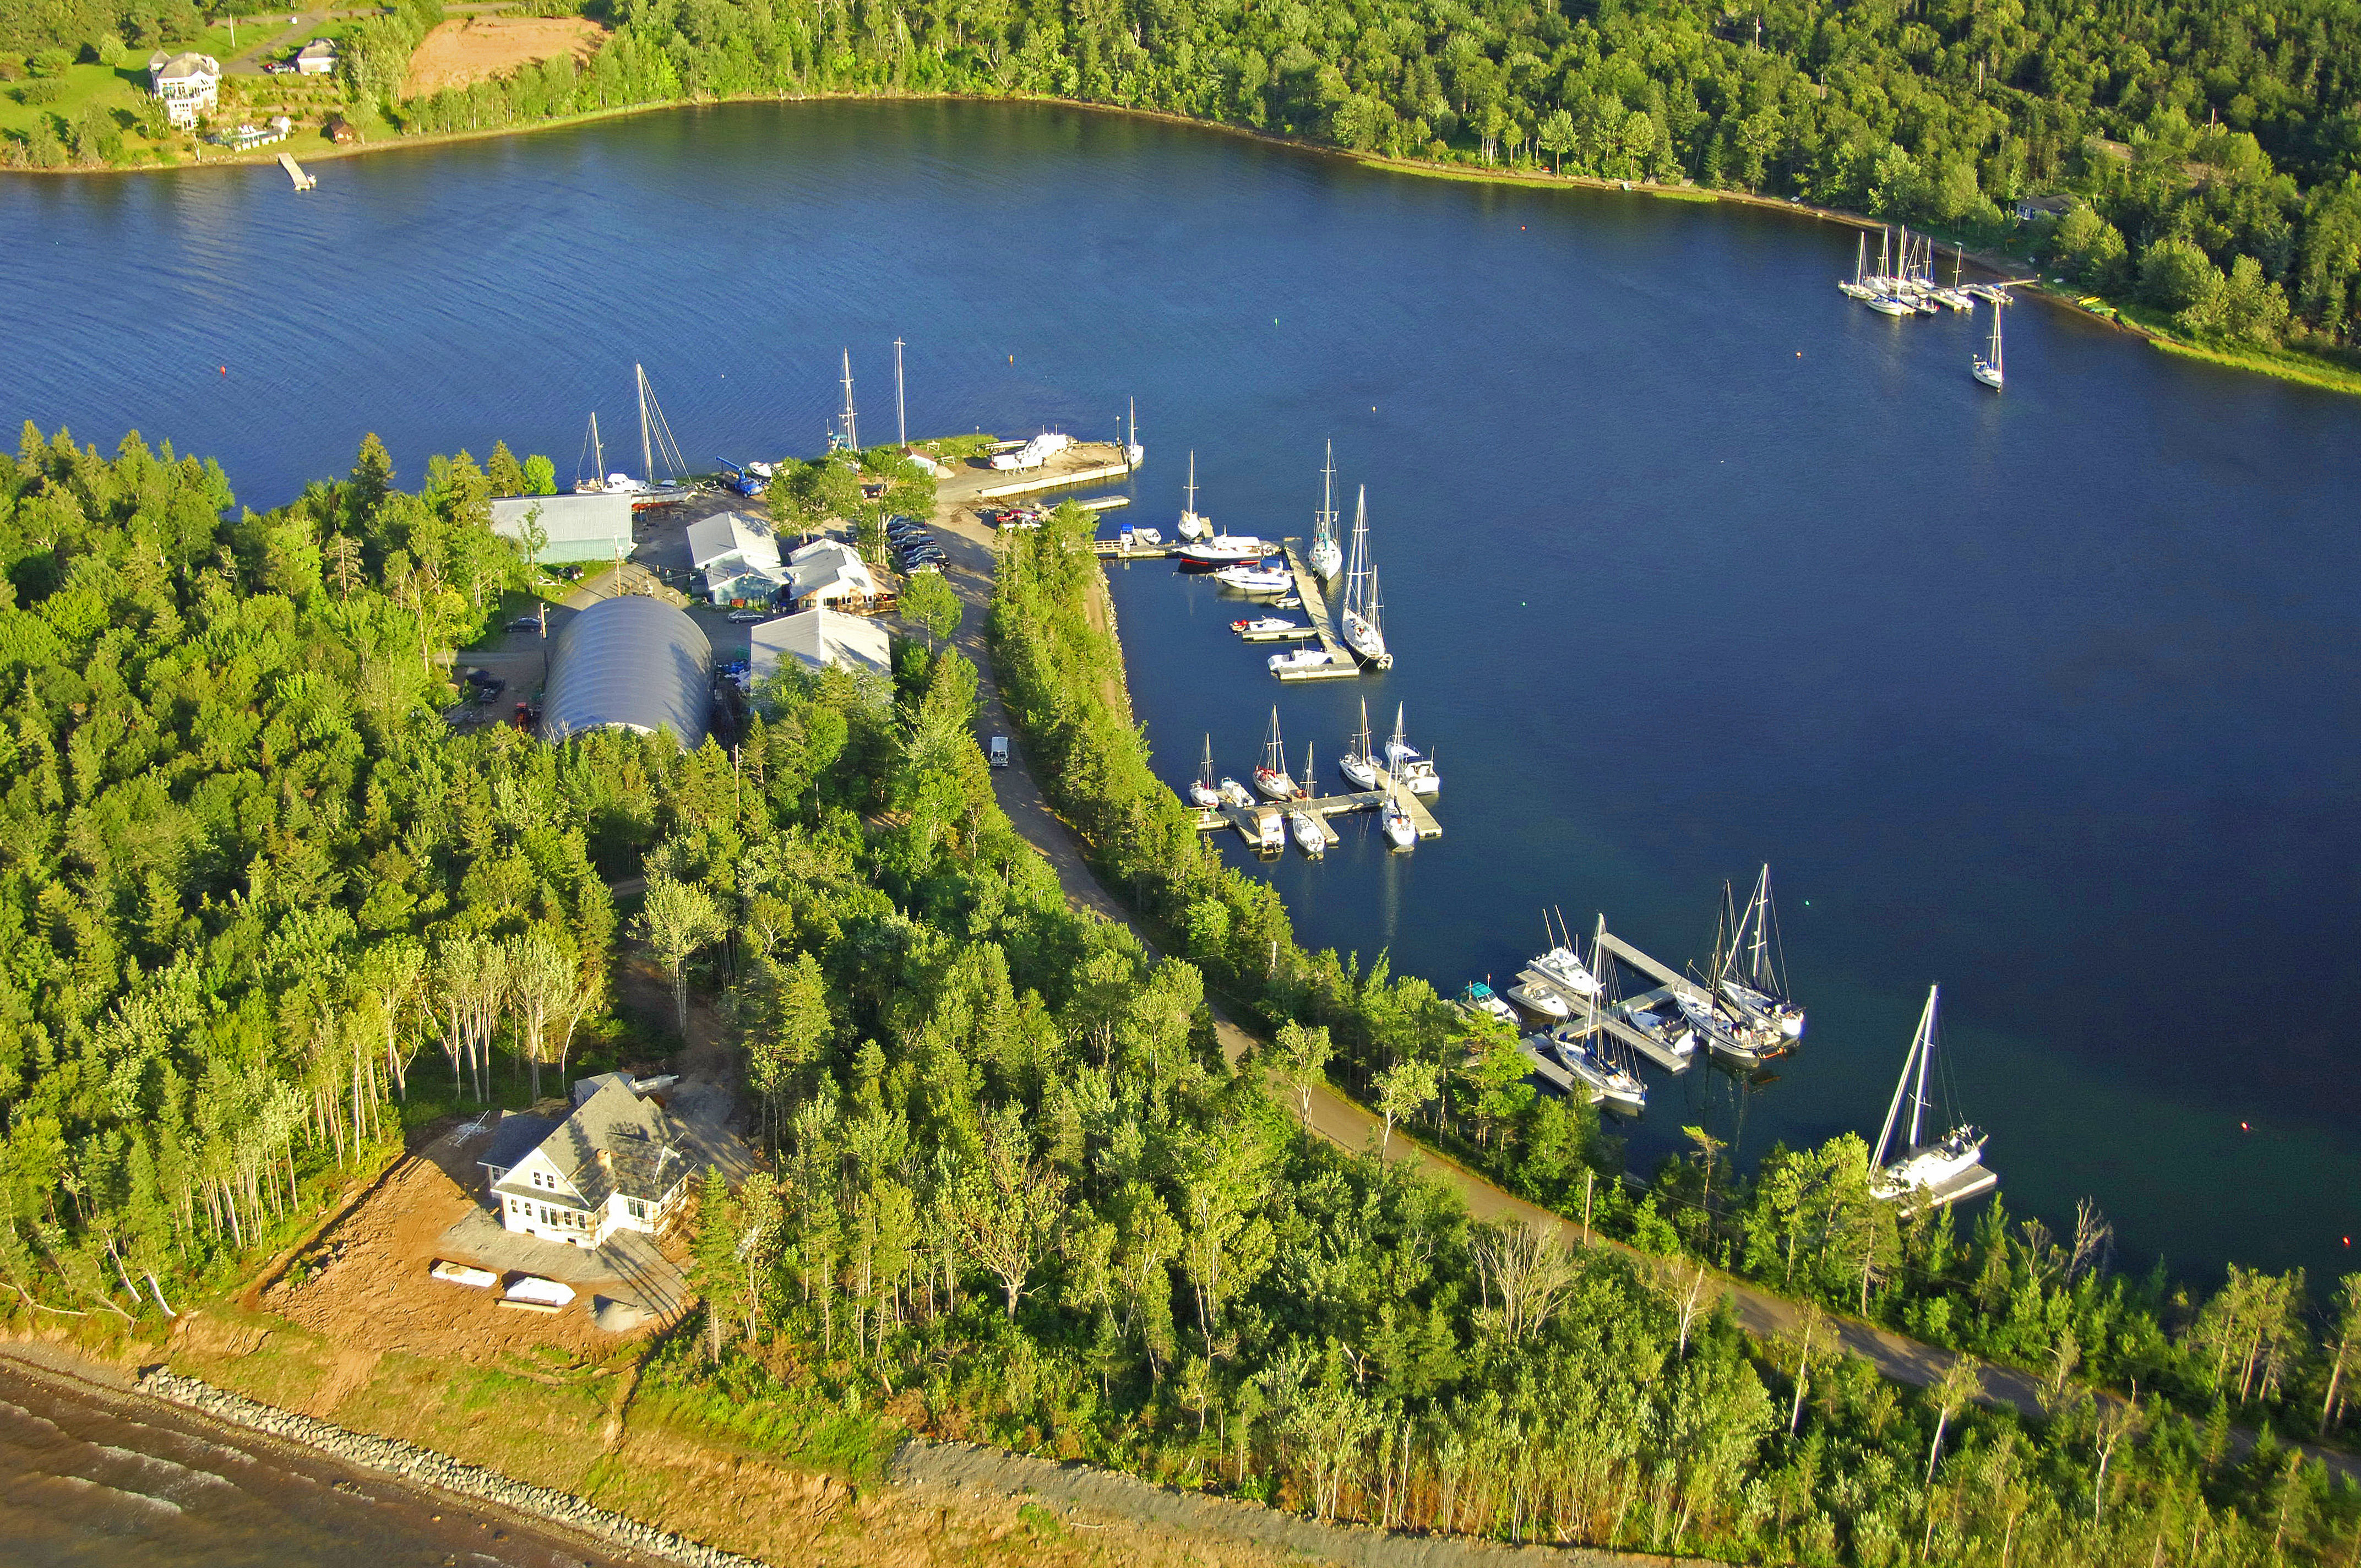 Dundee Marine - CLOSED - in West Bay, Dundee, NS, Canada ...